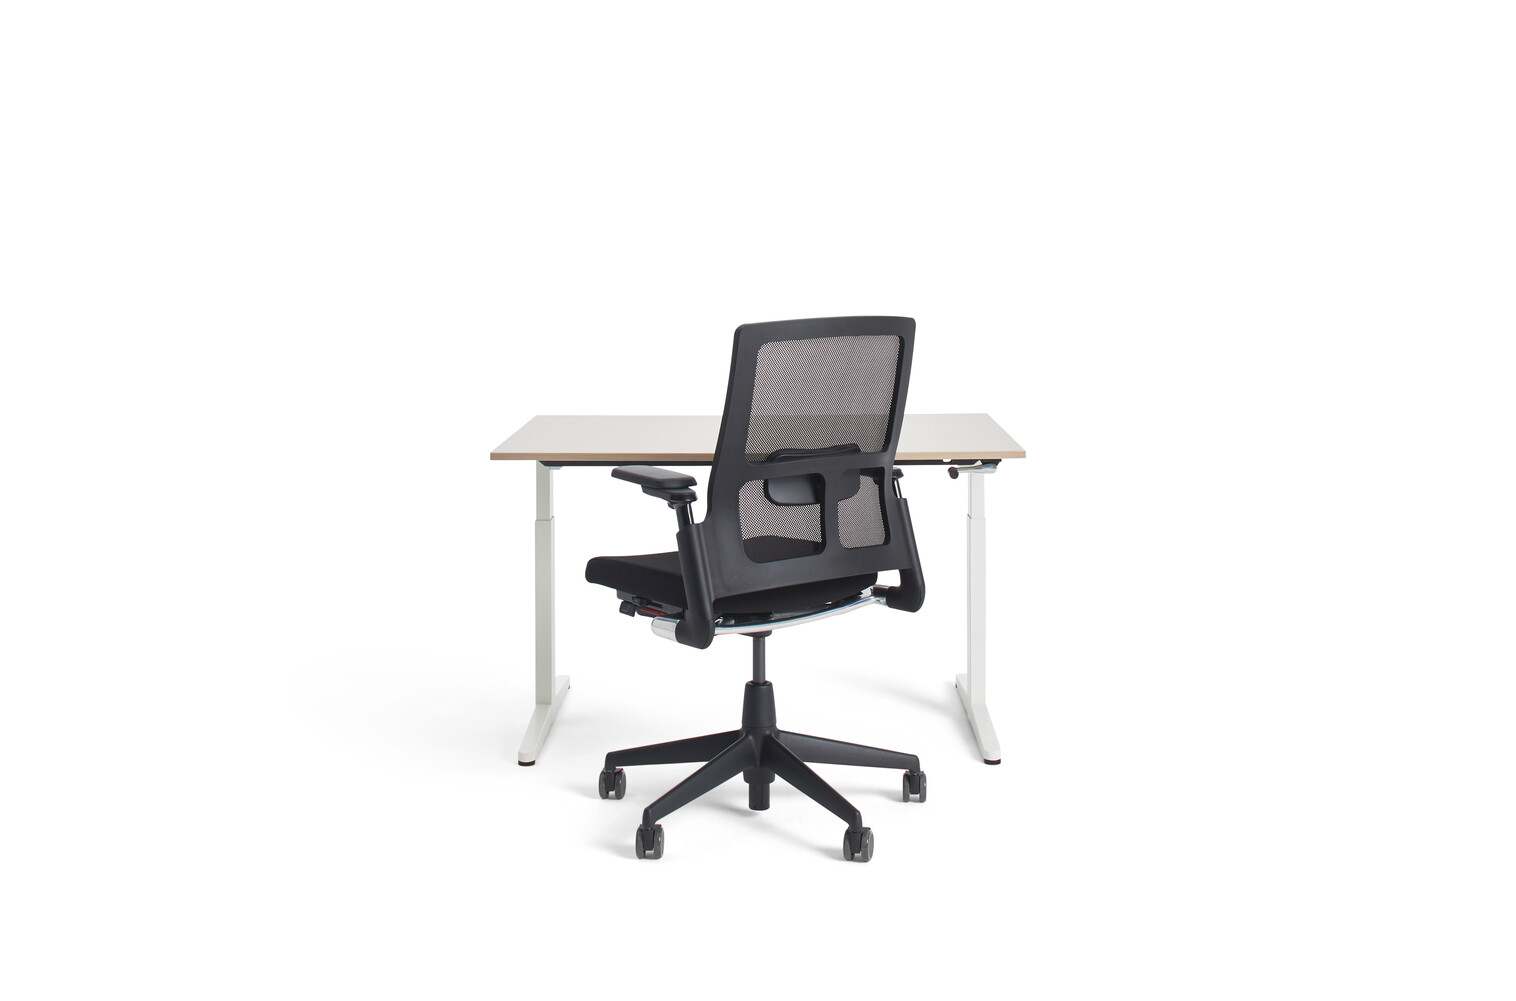 Gispen Home office HVM desk in white with oak tabletop and black A2020 Verta office chair front view